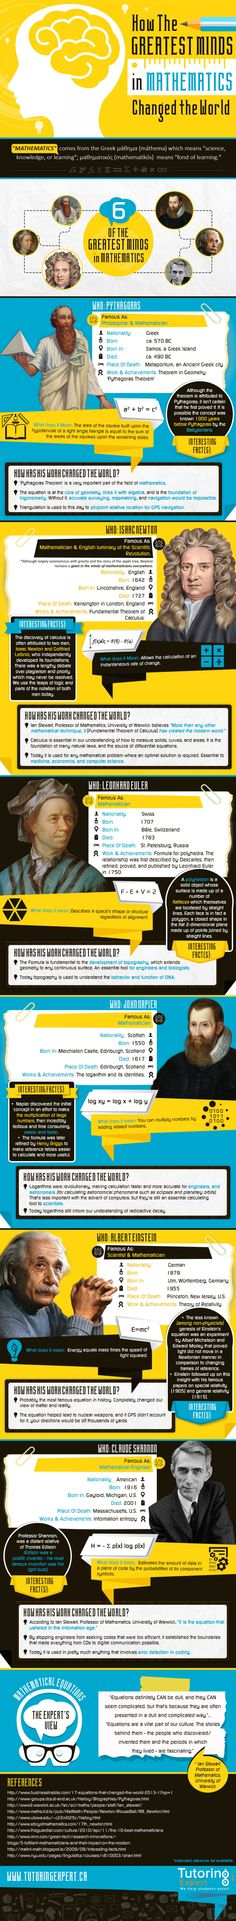 'How The Greatest Minds in Mathematics Changed the World' Info-graphic Infographic